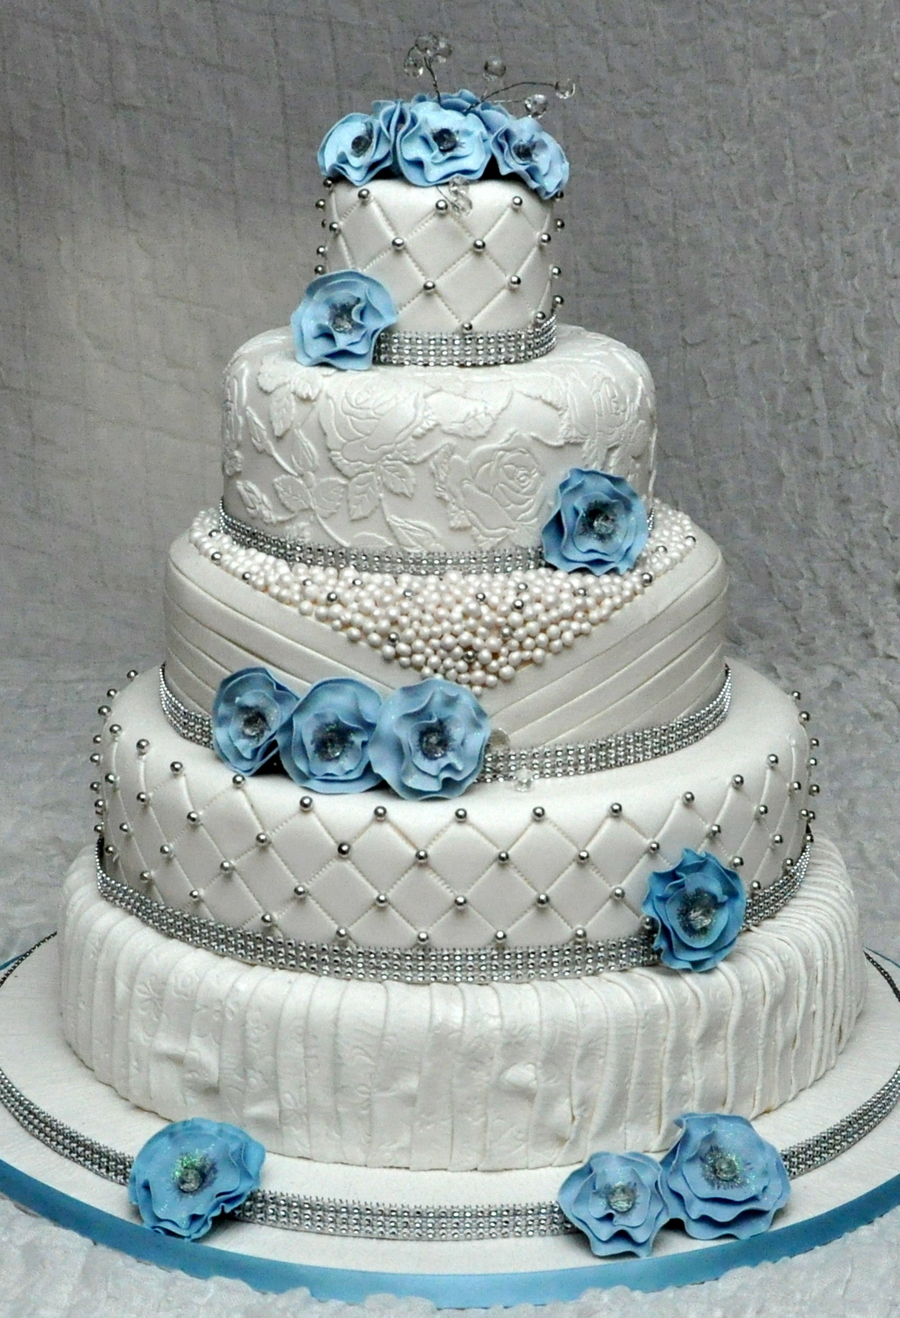 five tier wedding cakes 5 tier wedding cake with edible pearls and lace decorated 14306